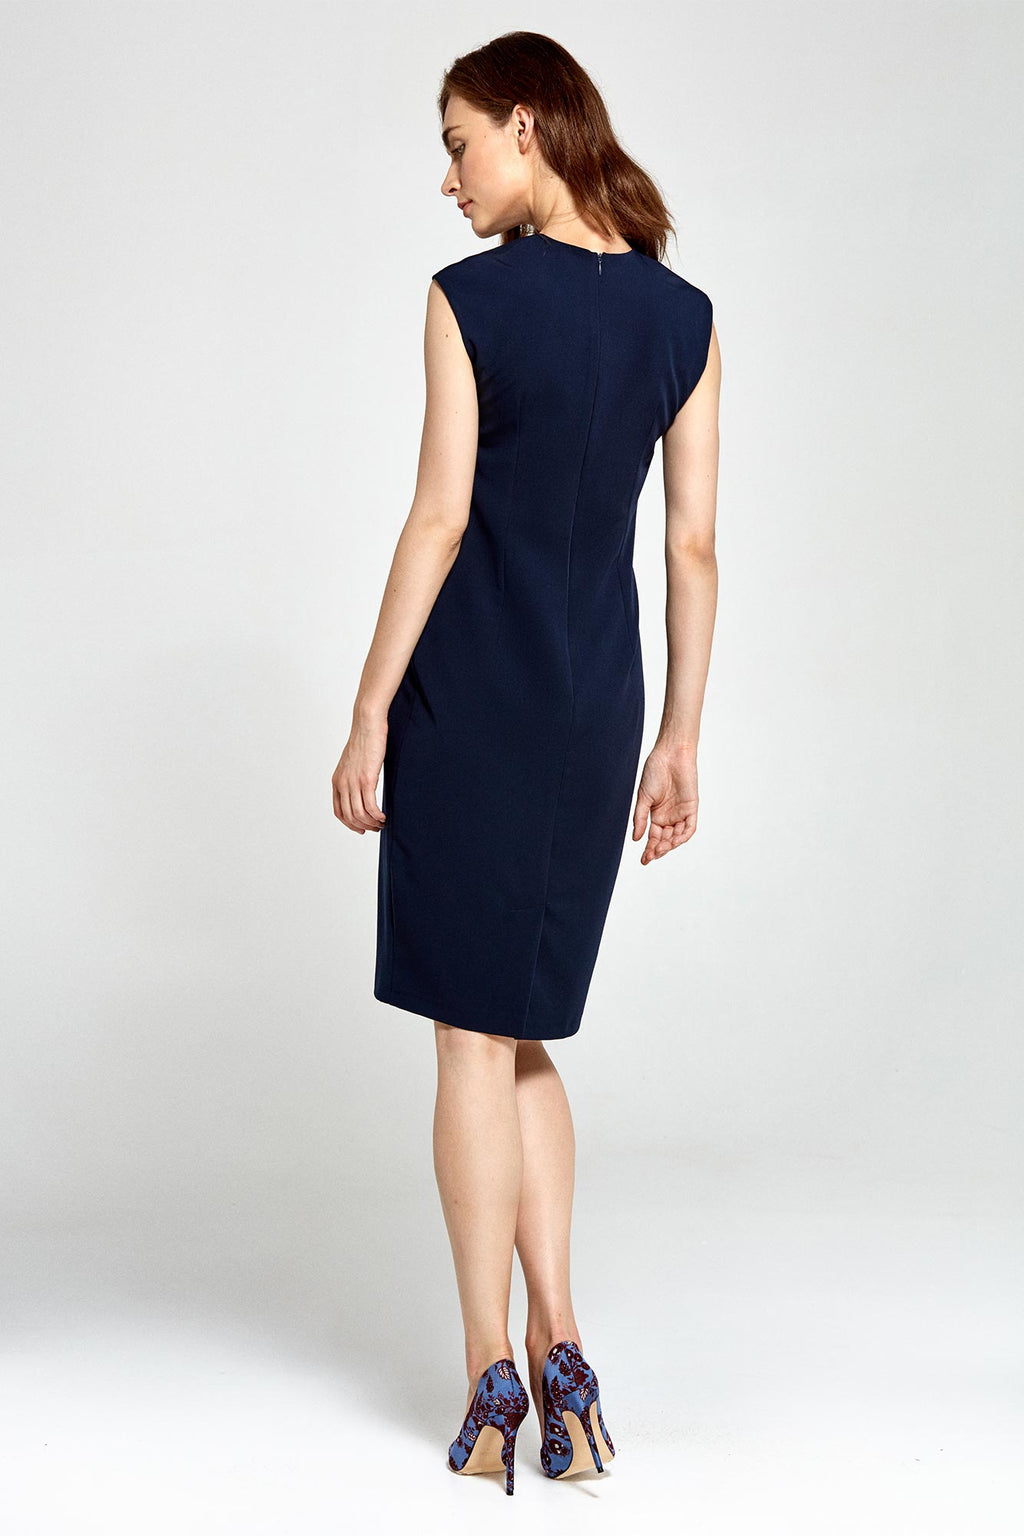 Navy Blue V Neckline Dress - So Chic Boutique